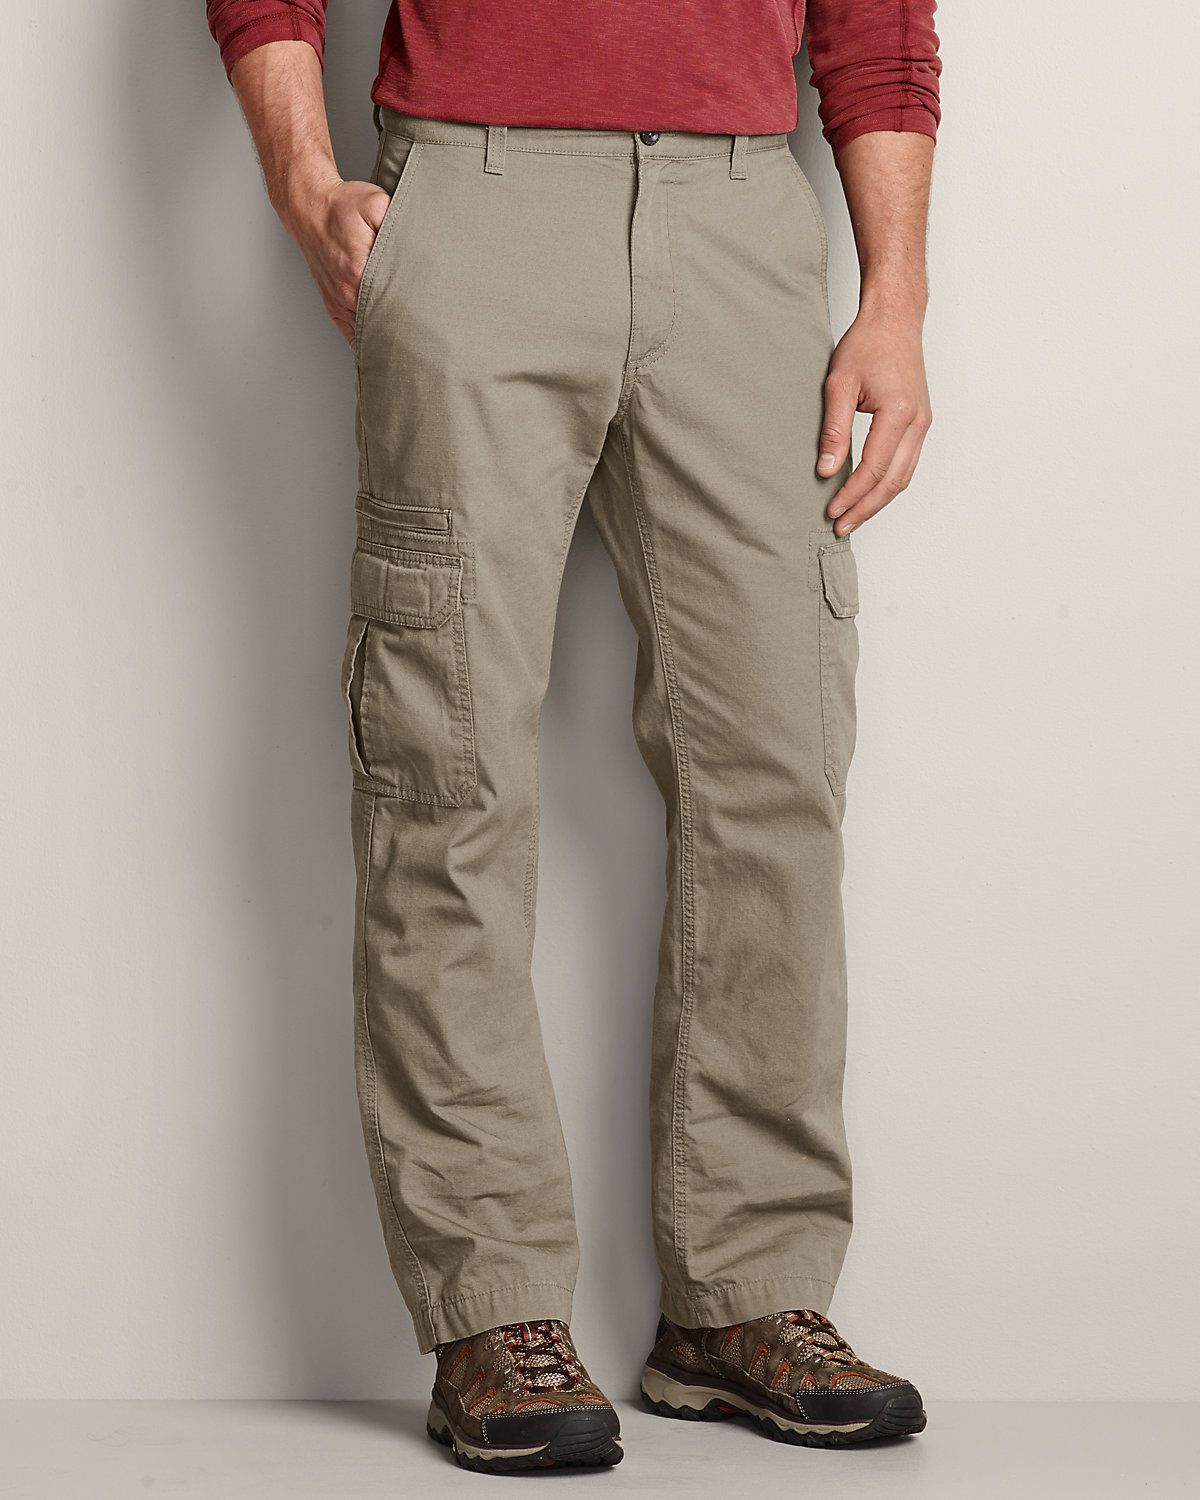 Versatrex® Cargo Pants | Eddie Bauer | Fashion advice from the ...